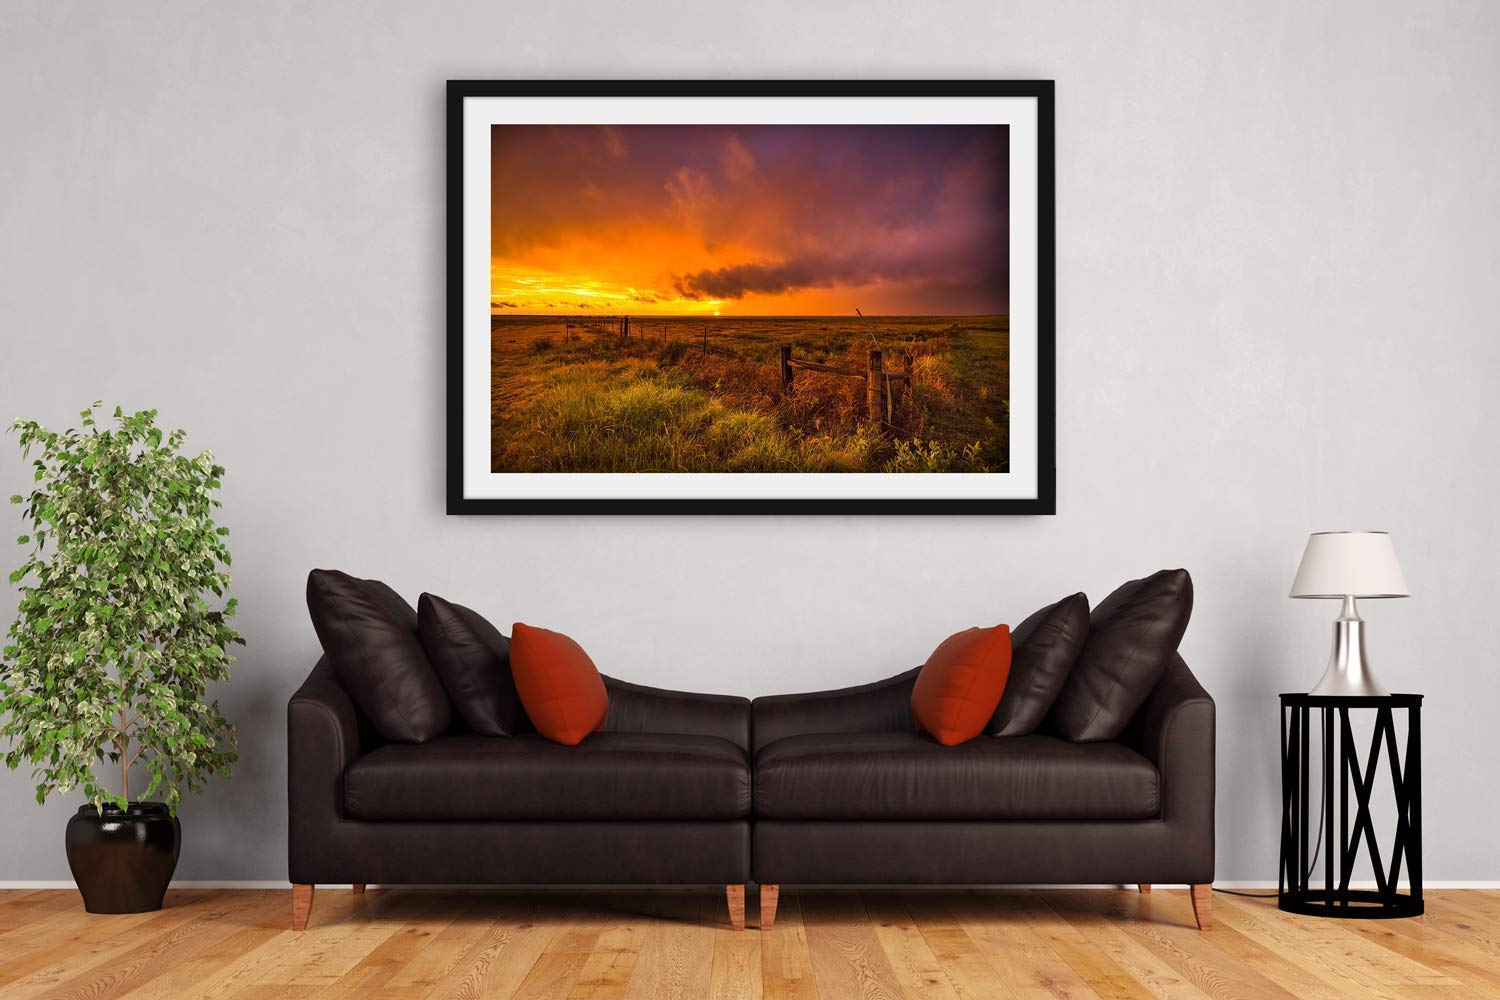 Landscape Photography Wall Art Print Picture of Sunset on Stormy Evening in Oklahoma Panhandle Western Sky Country Decor 5x7 to 40x60